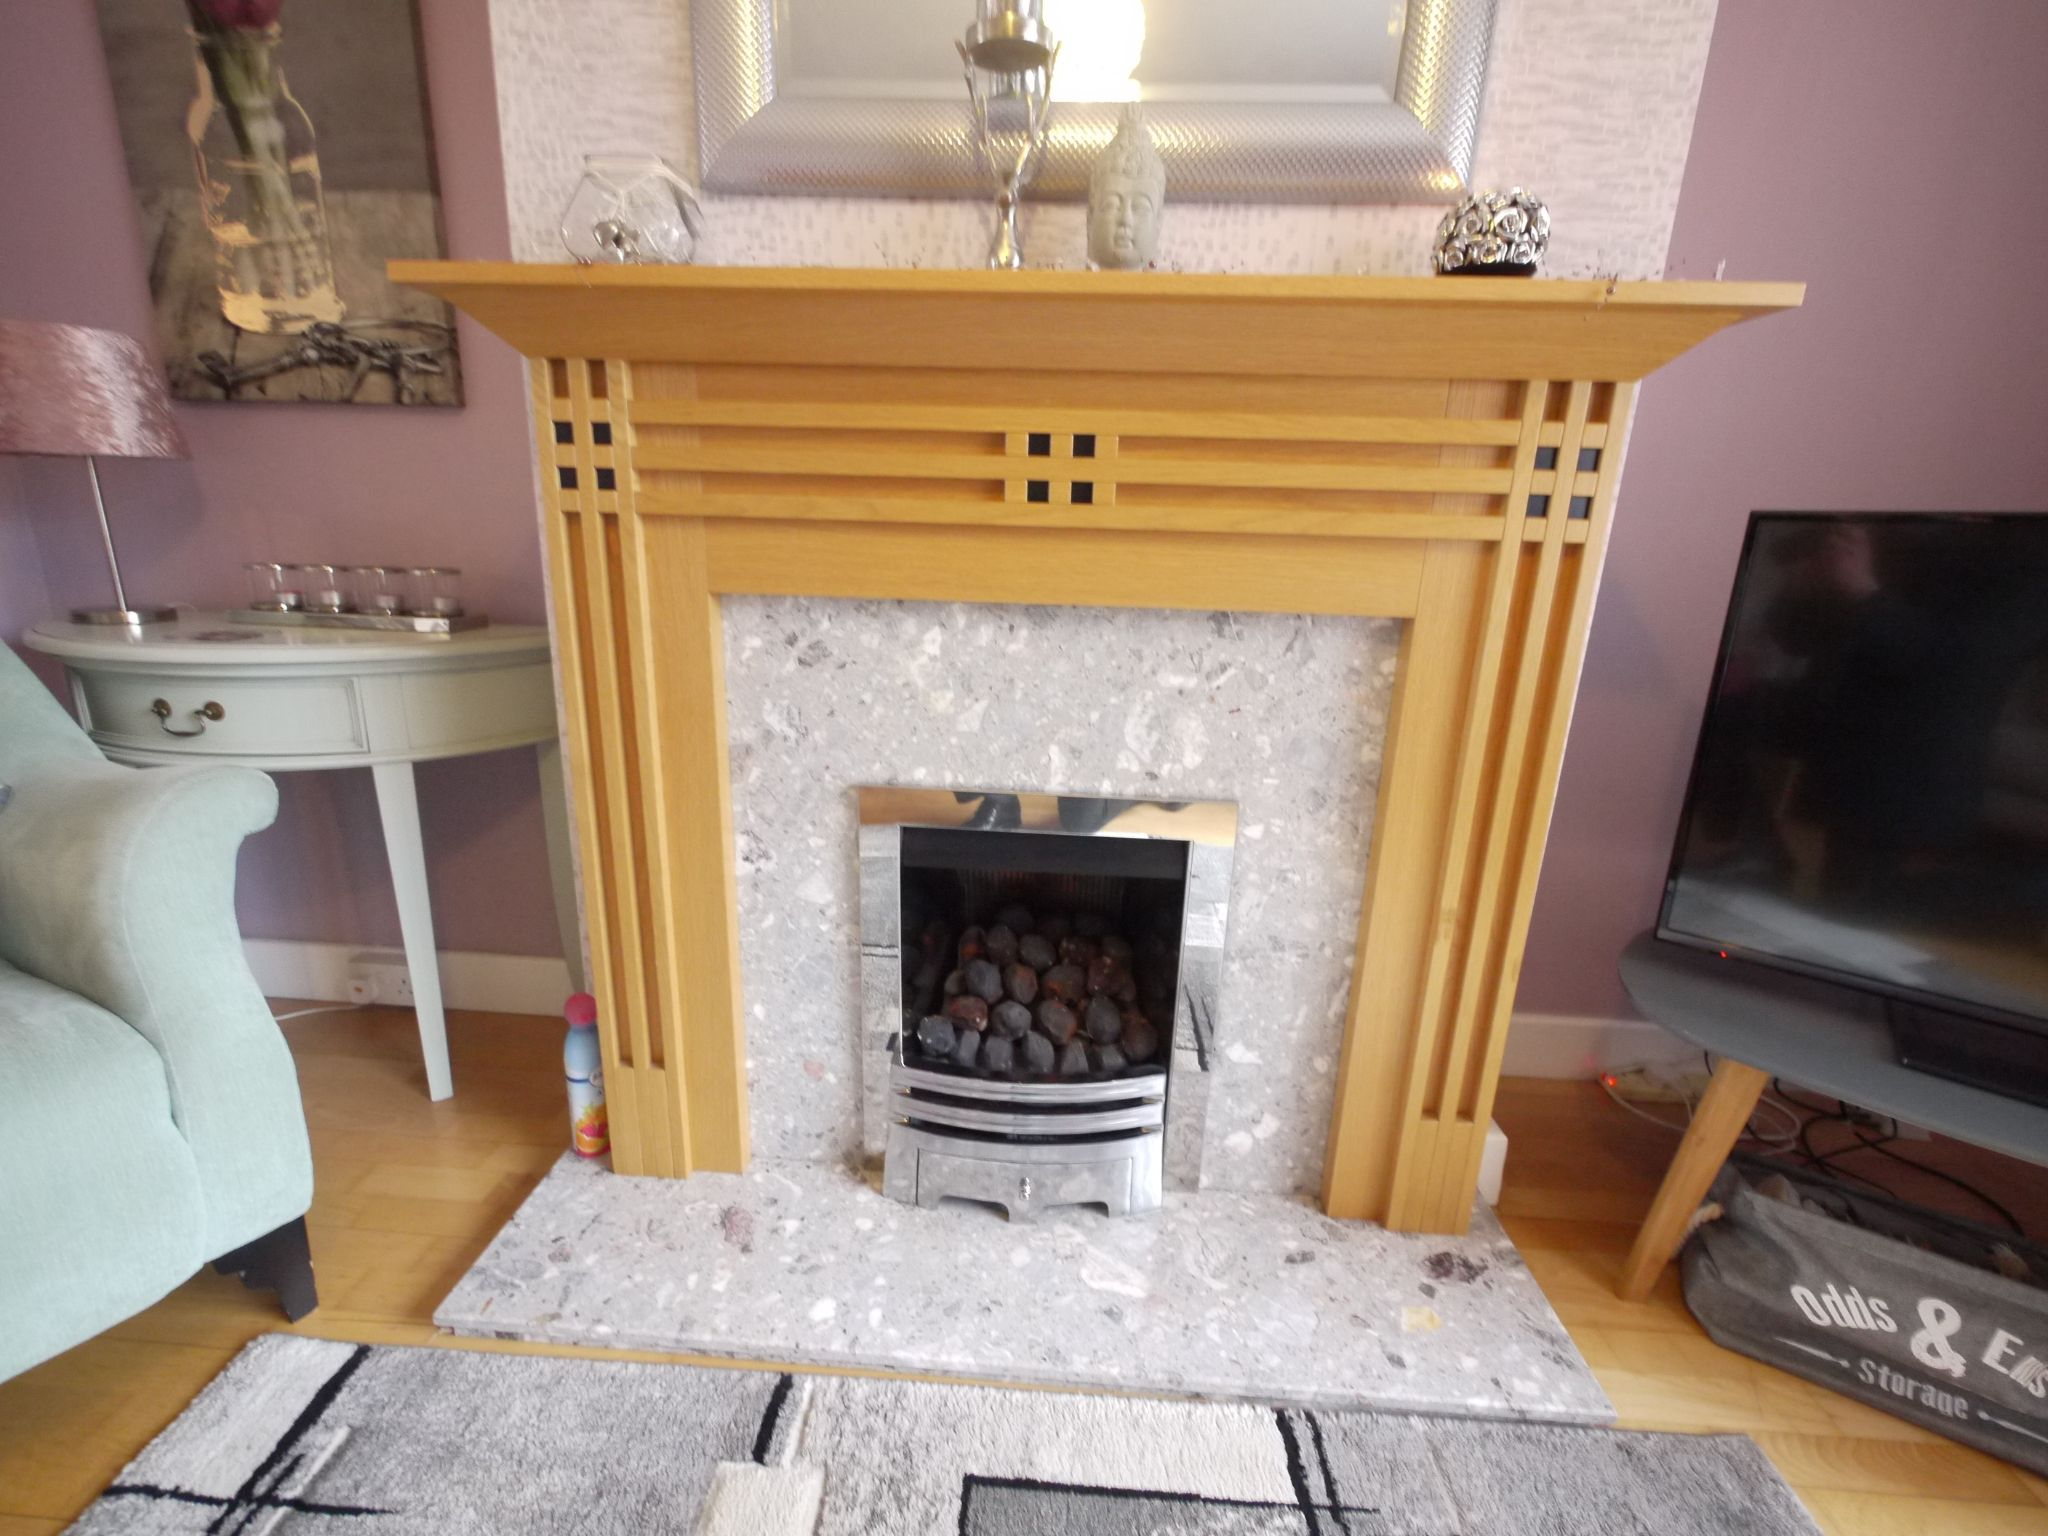 3 bedroom semi-detached house SSTC in Brighouse - Fireplace.